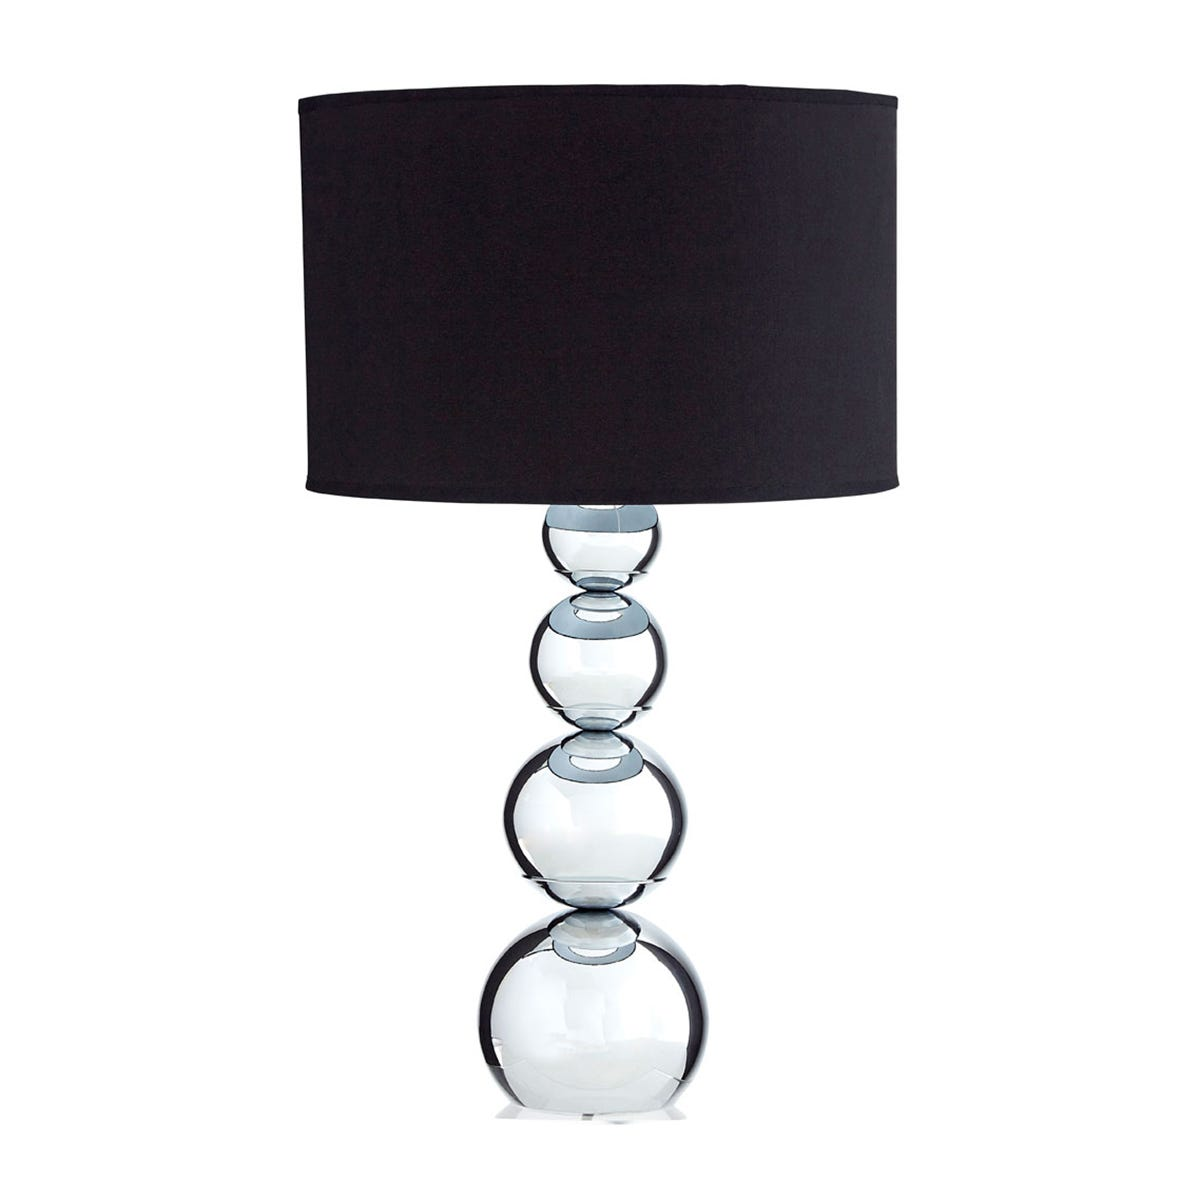 Premier Housewares Cameo Touch Table Lamp with Chrome Iron Base & Black Fabric Shade